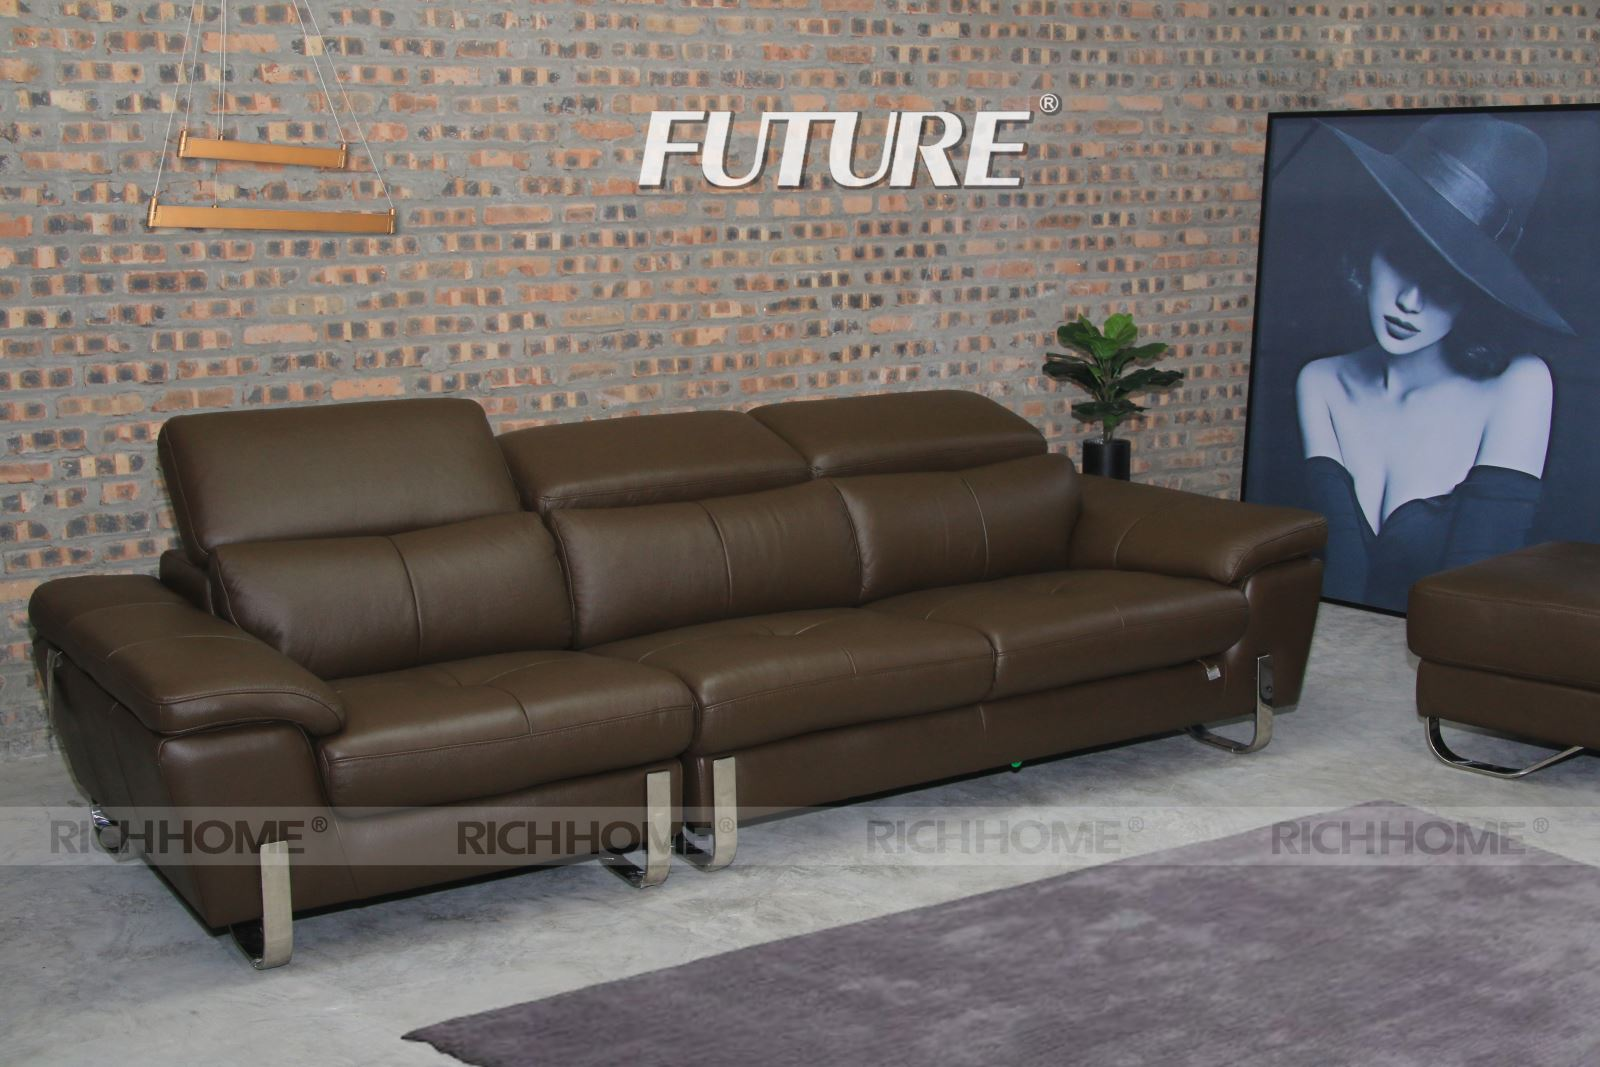 SOFA BĂNG DA BÒ - FUTURE MODEL 7054 (1+2+3)